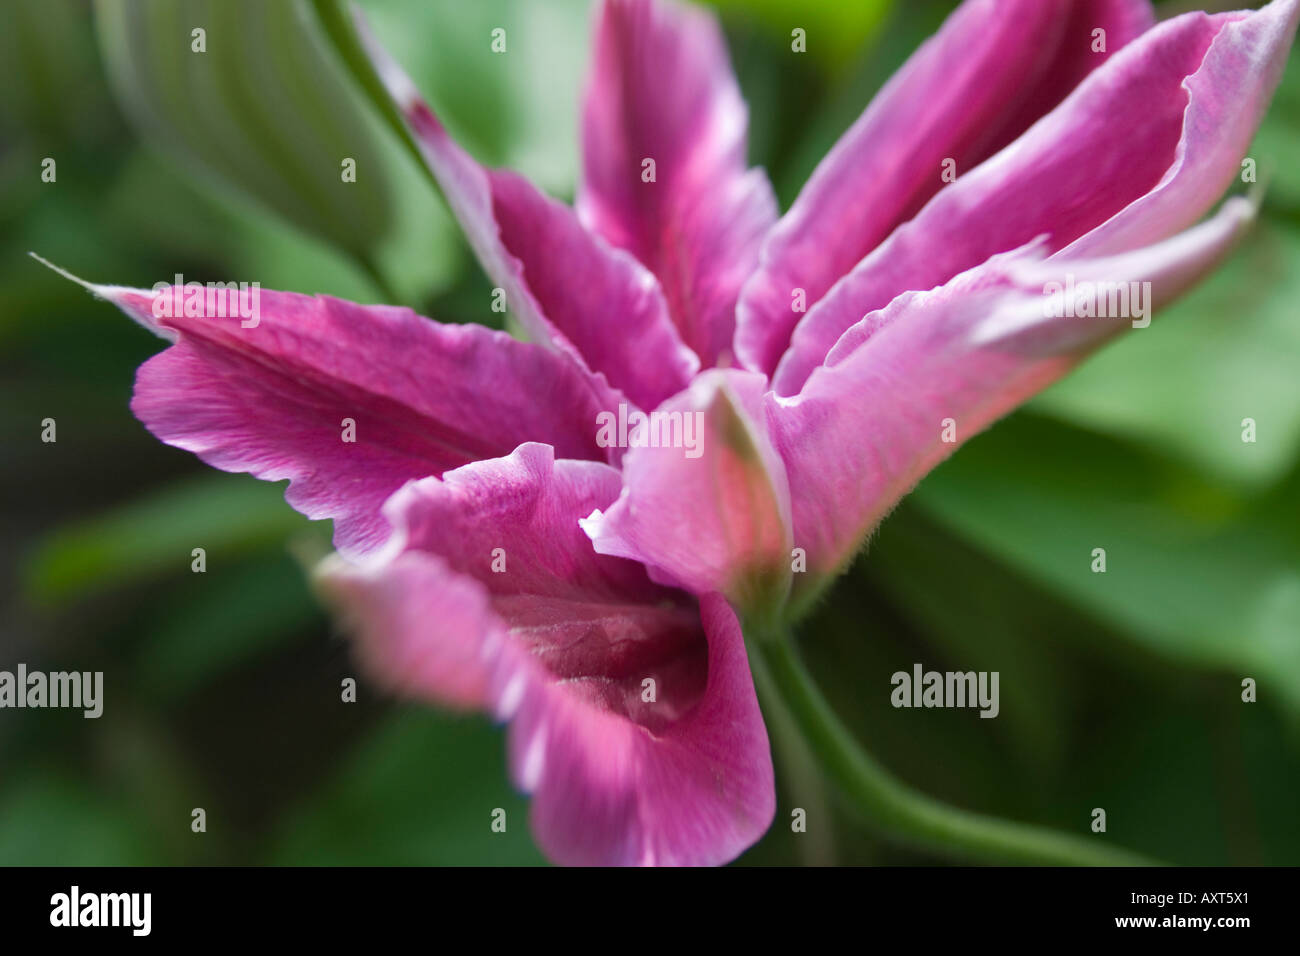 Clematis Nelly Moser Single Pink Flower Opening Stock Photo